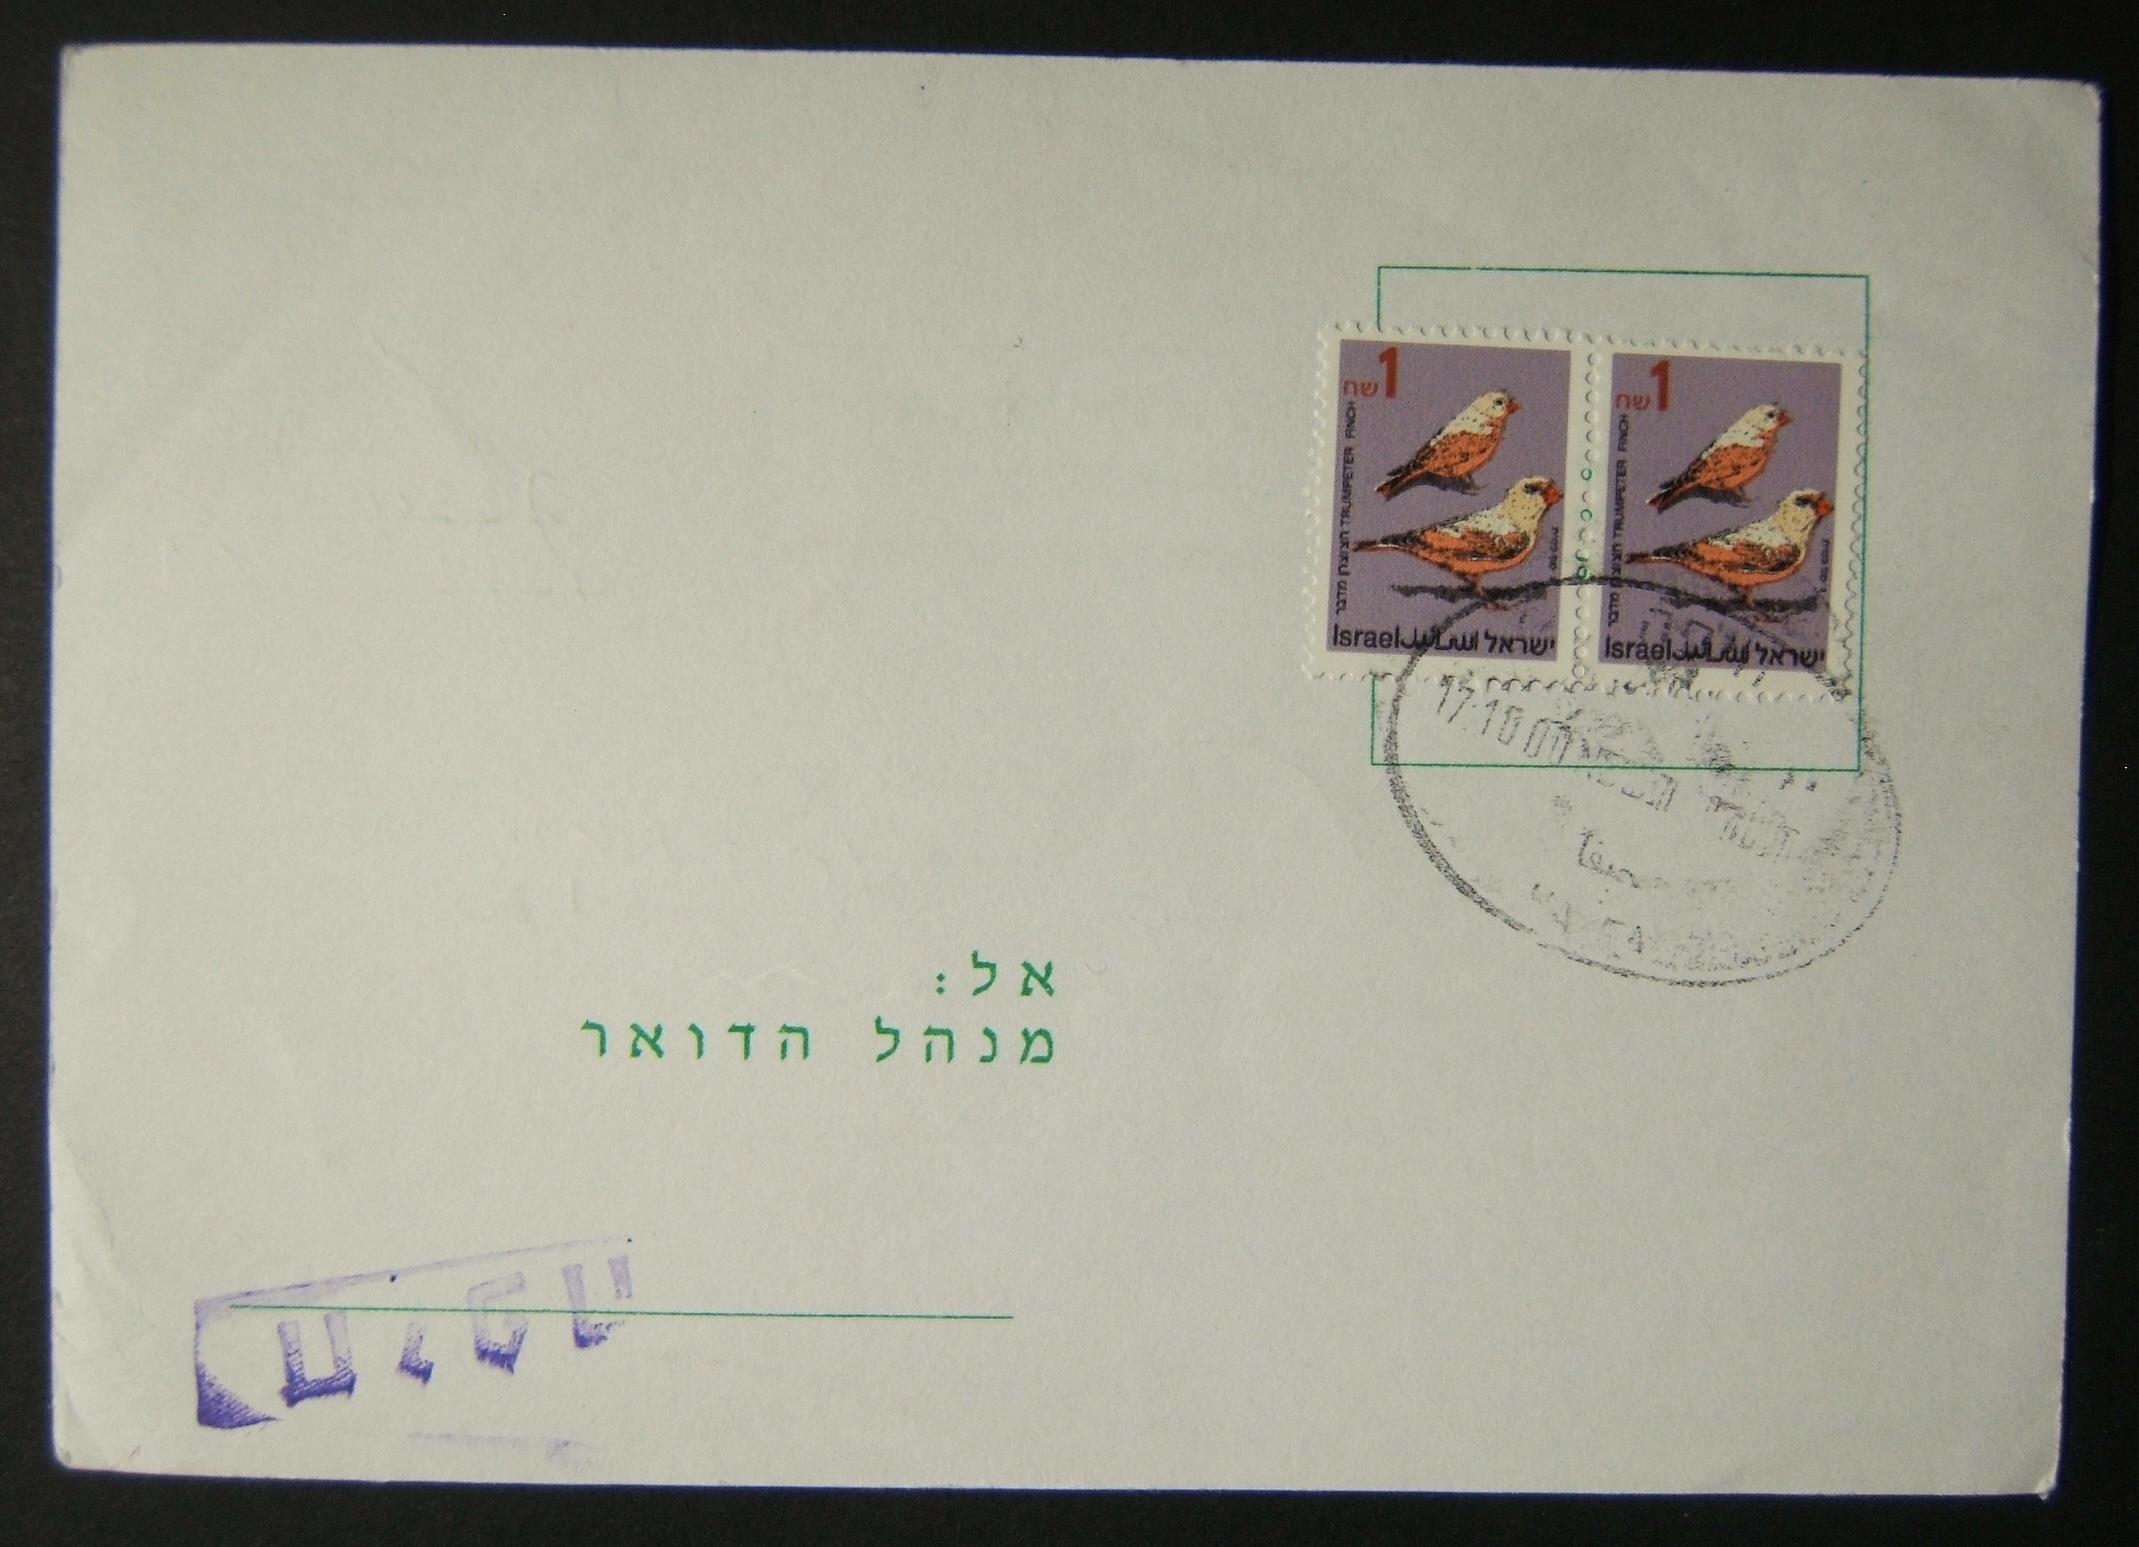 2000 DO-79 rate period franked taxation notice: 15-10-2000 Postal Authority printed sender taxation notice to HAIFA requesting additional franking for attempting to send a printed